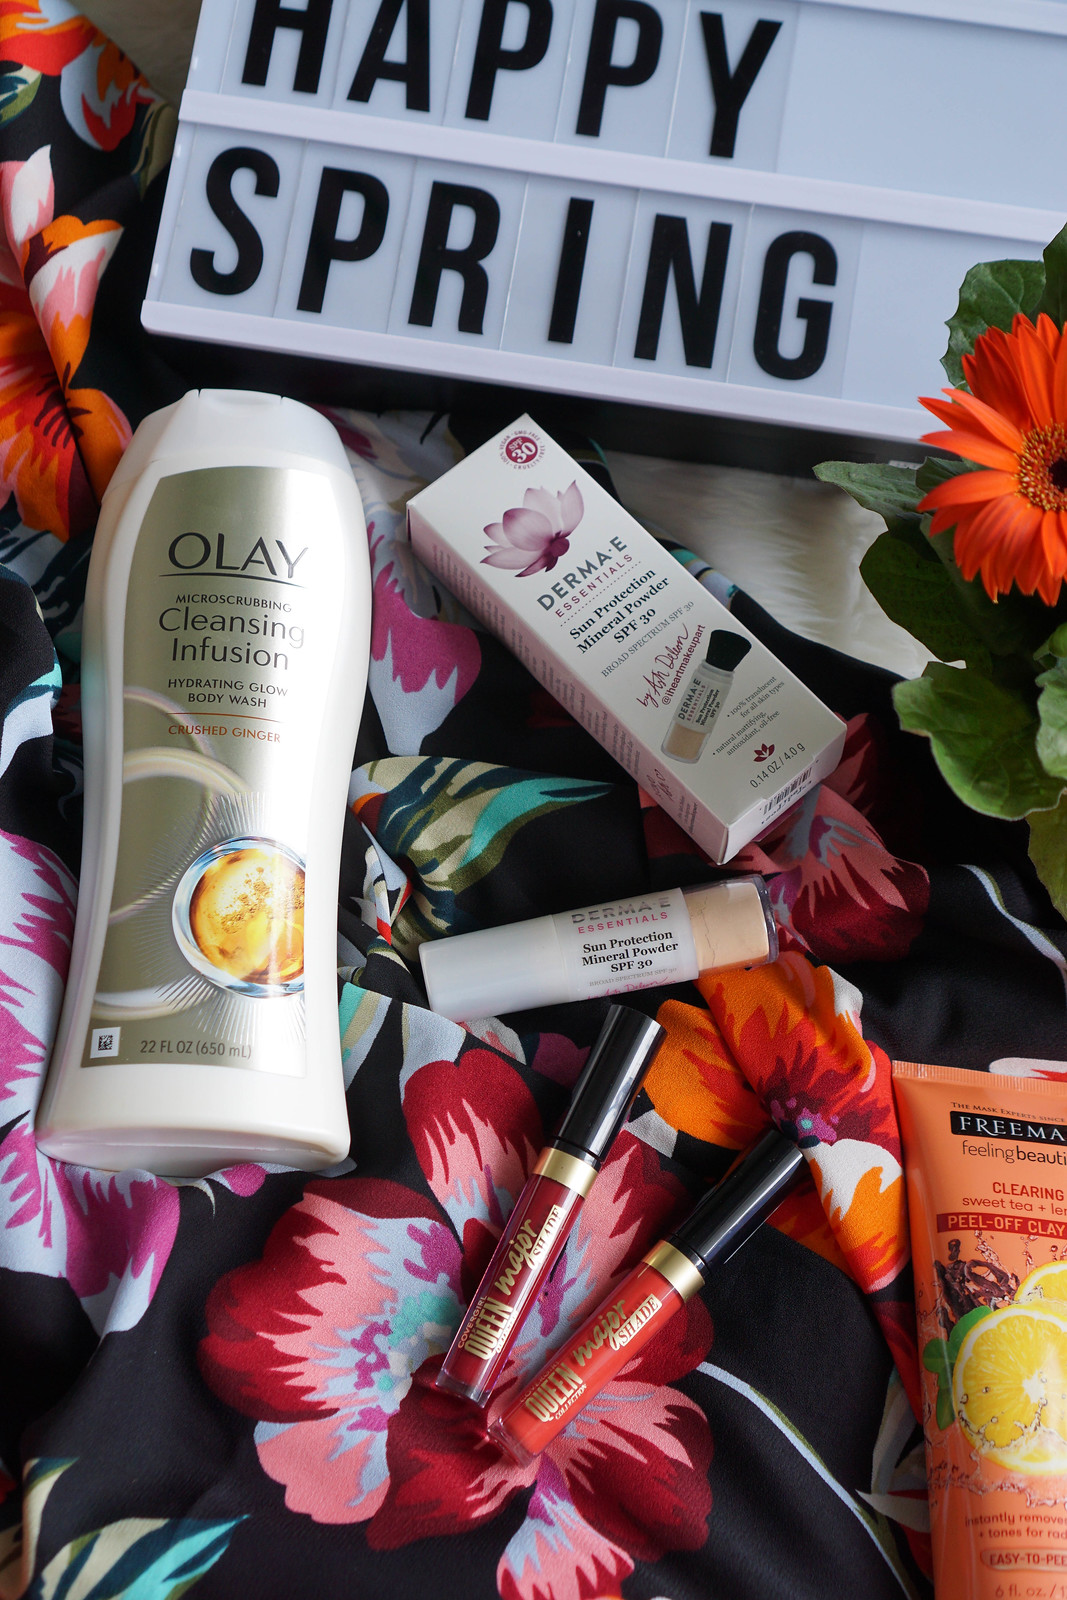 Olay-Microscrubbing-Cleansing-Infusion-Hydrating-Glow-Body-Wash-Skincare-Review-Living-After-Midnite-Beauty-Blogger